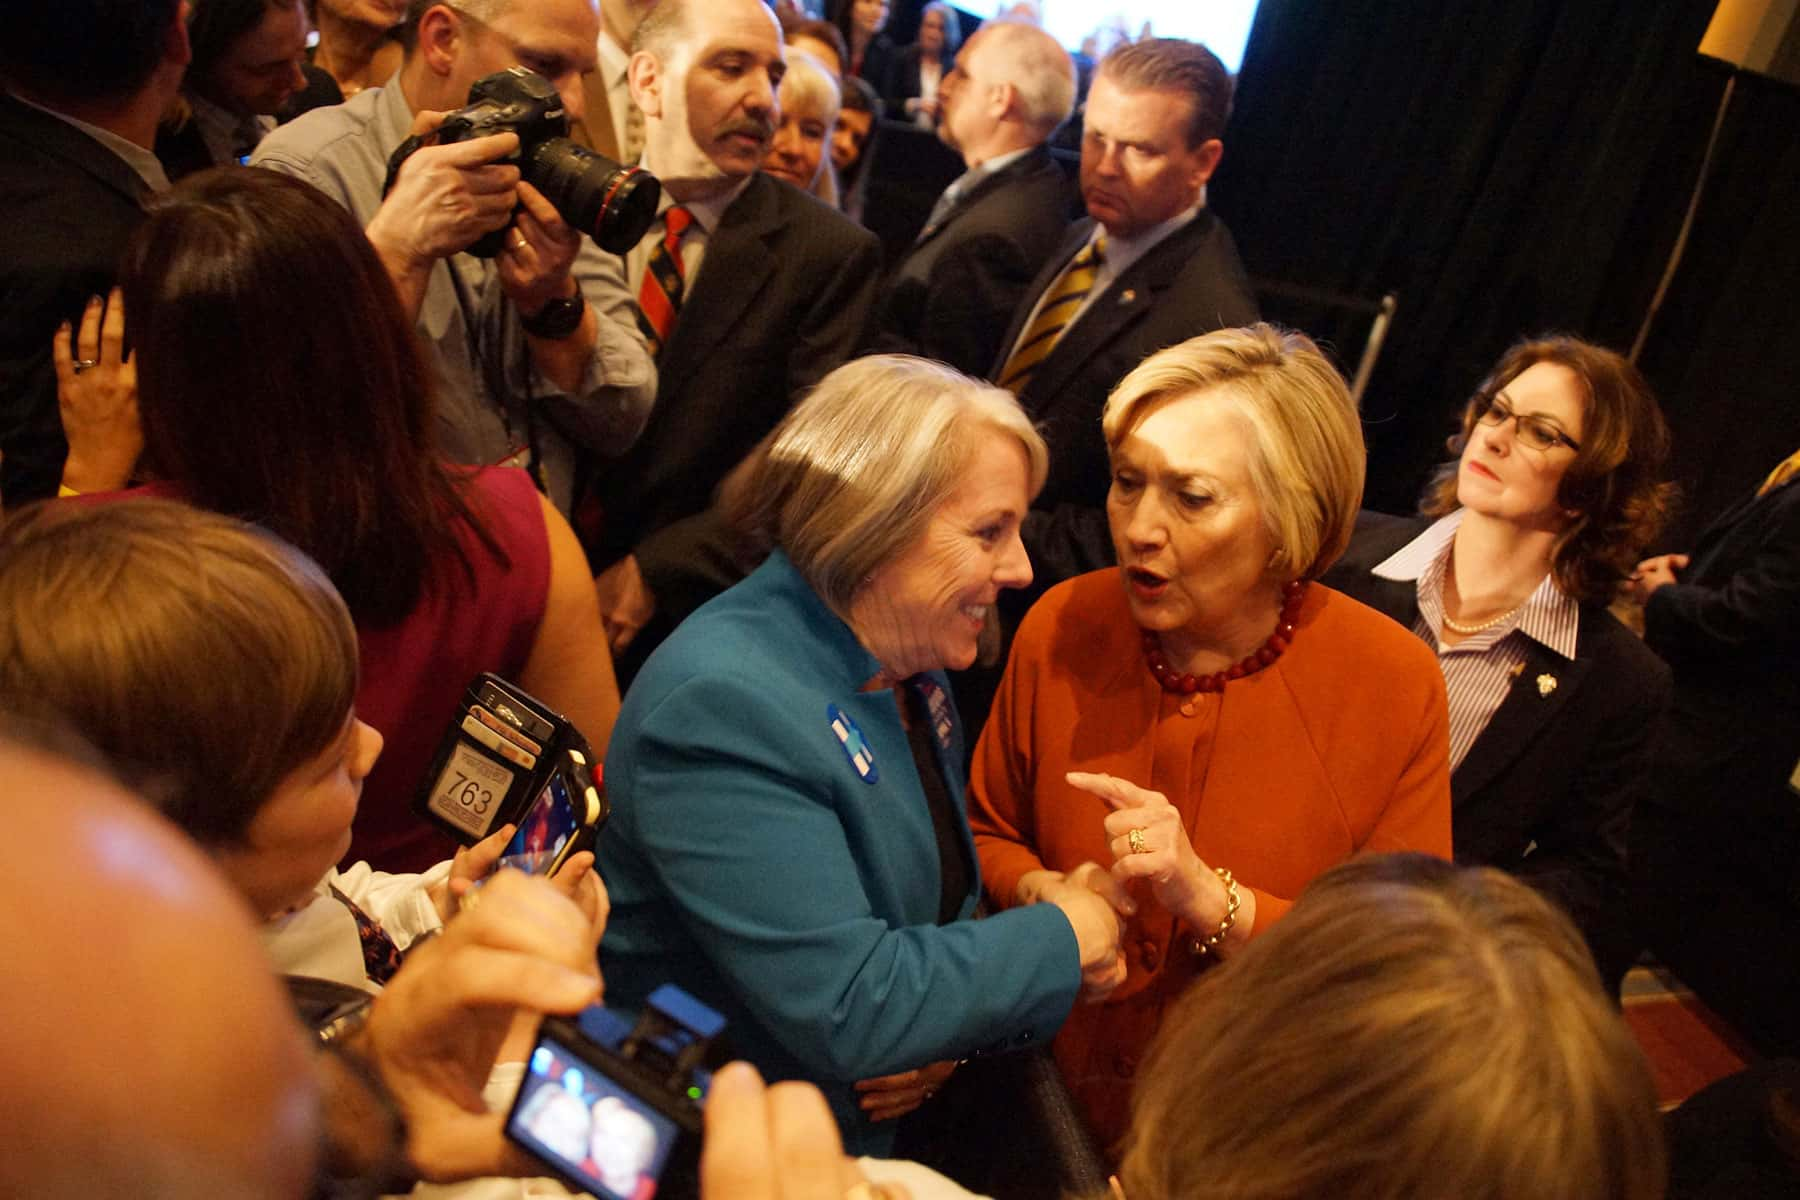 040216_DemParty_2801